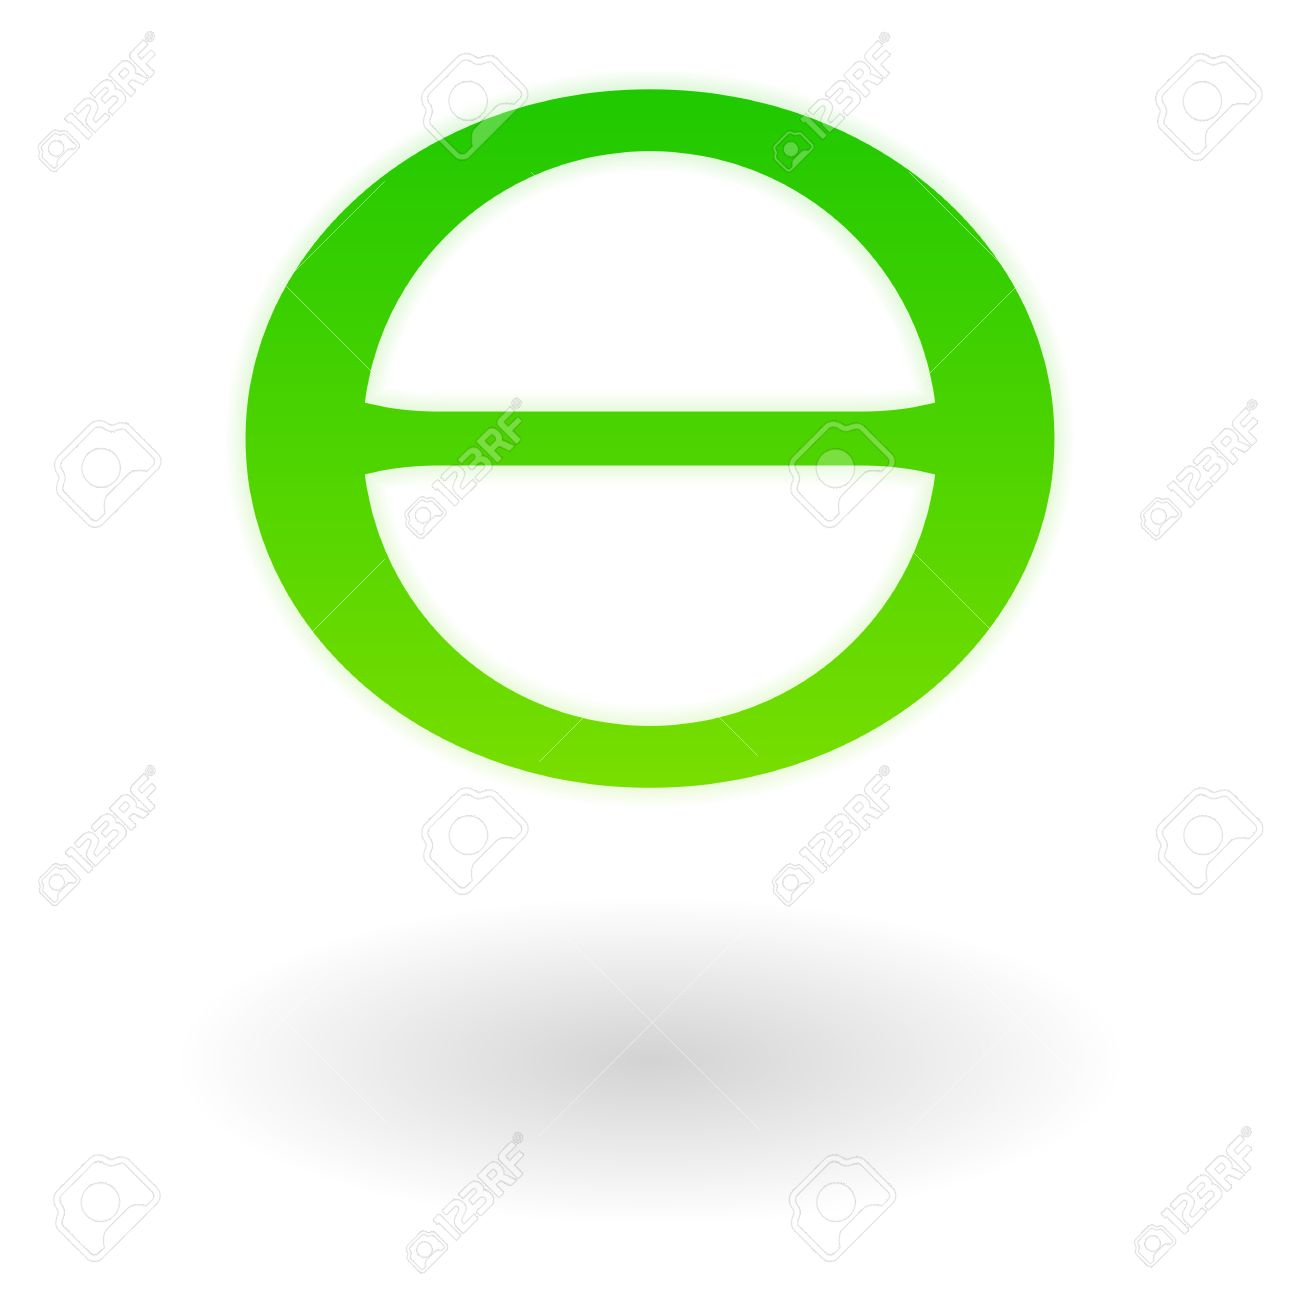 The green greek letter theta earth day symbol royalty free the green greek letter theta earth day symbol stock vector 53970207 biocorpaavc Image collections